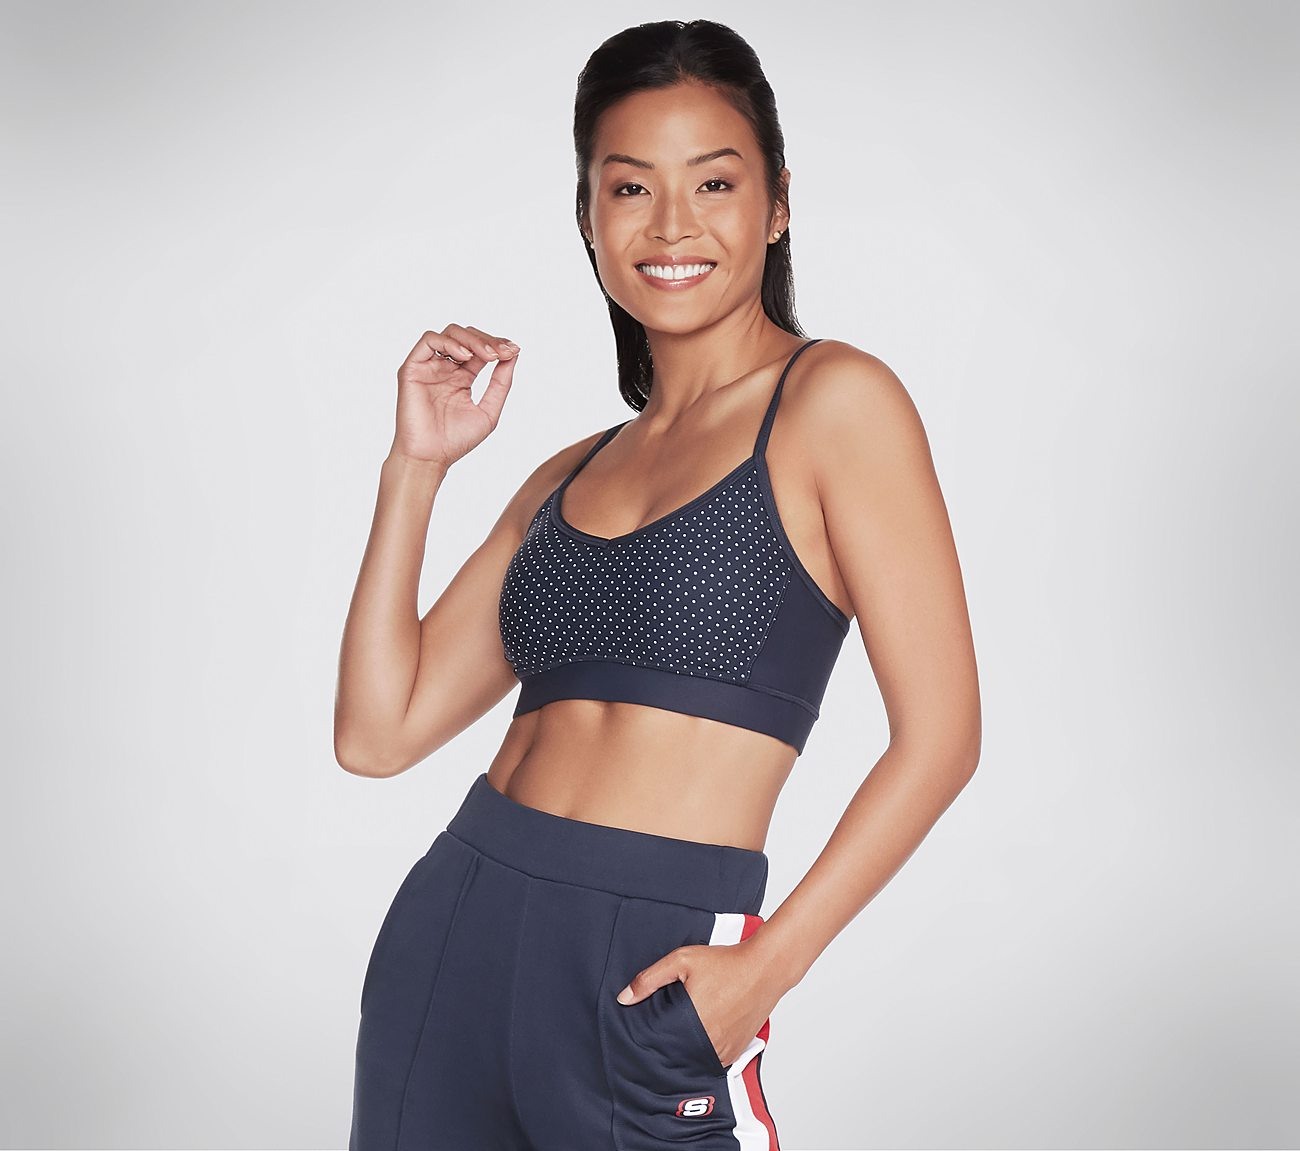 Skechers Apparel Freedom Bra Top